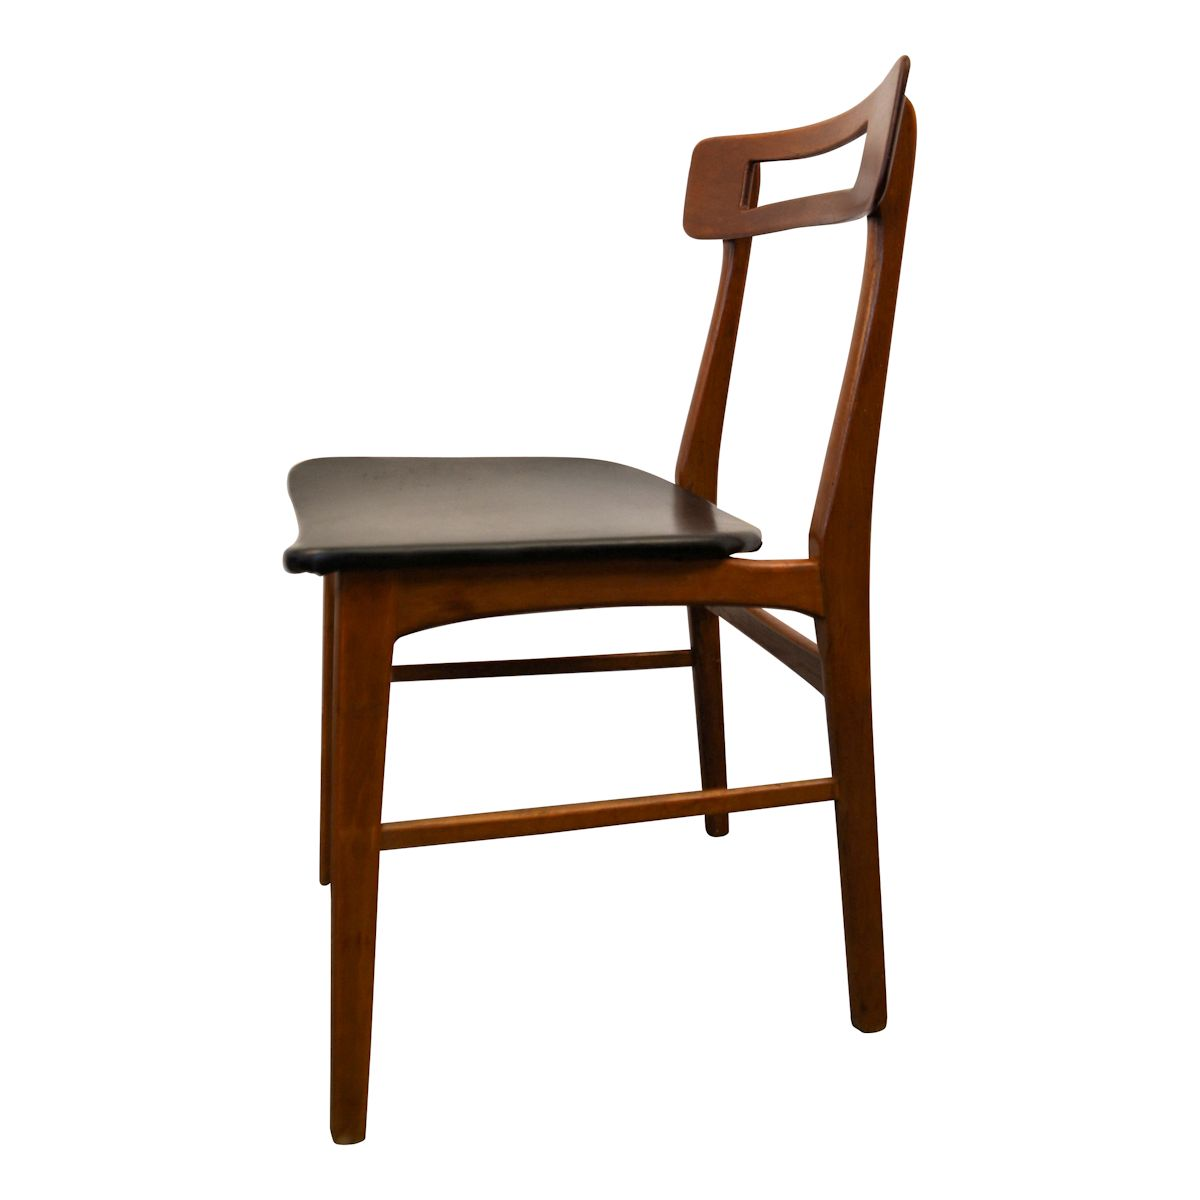 Vintage teak danish modern dining chairs vintage vibes for Retro modern dining chairs